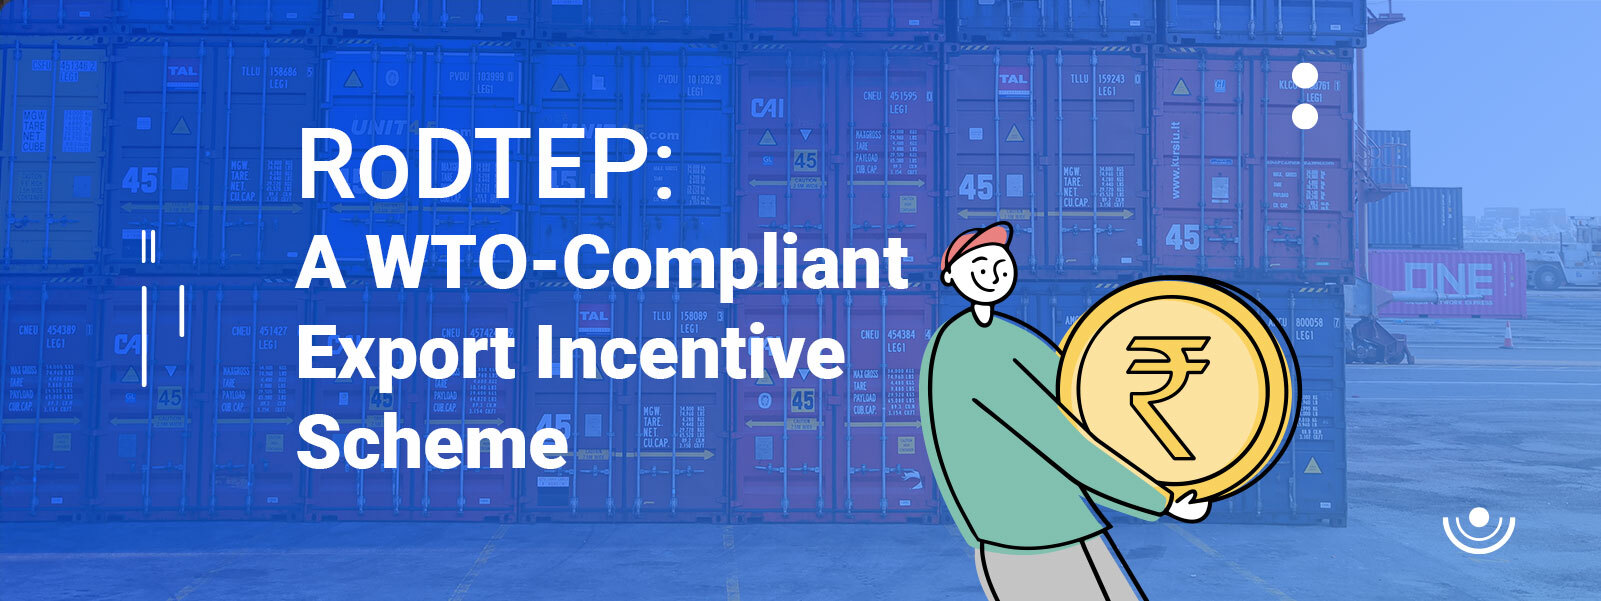 RoDTEP: A WTO-Compliant Export Incentive Scheme